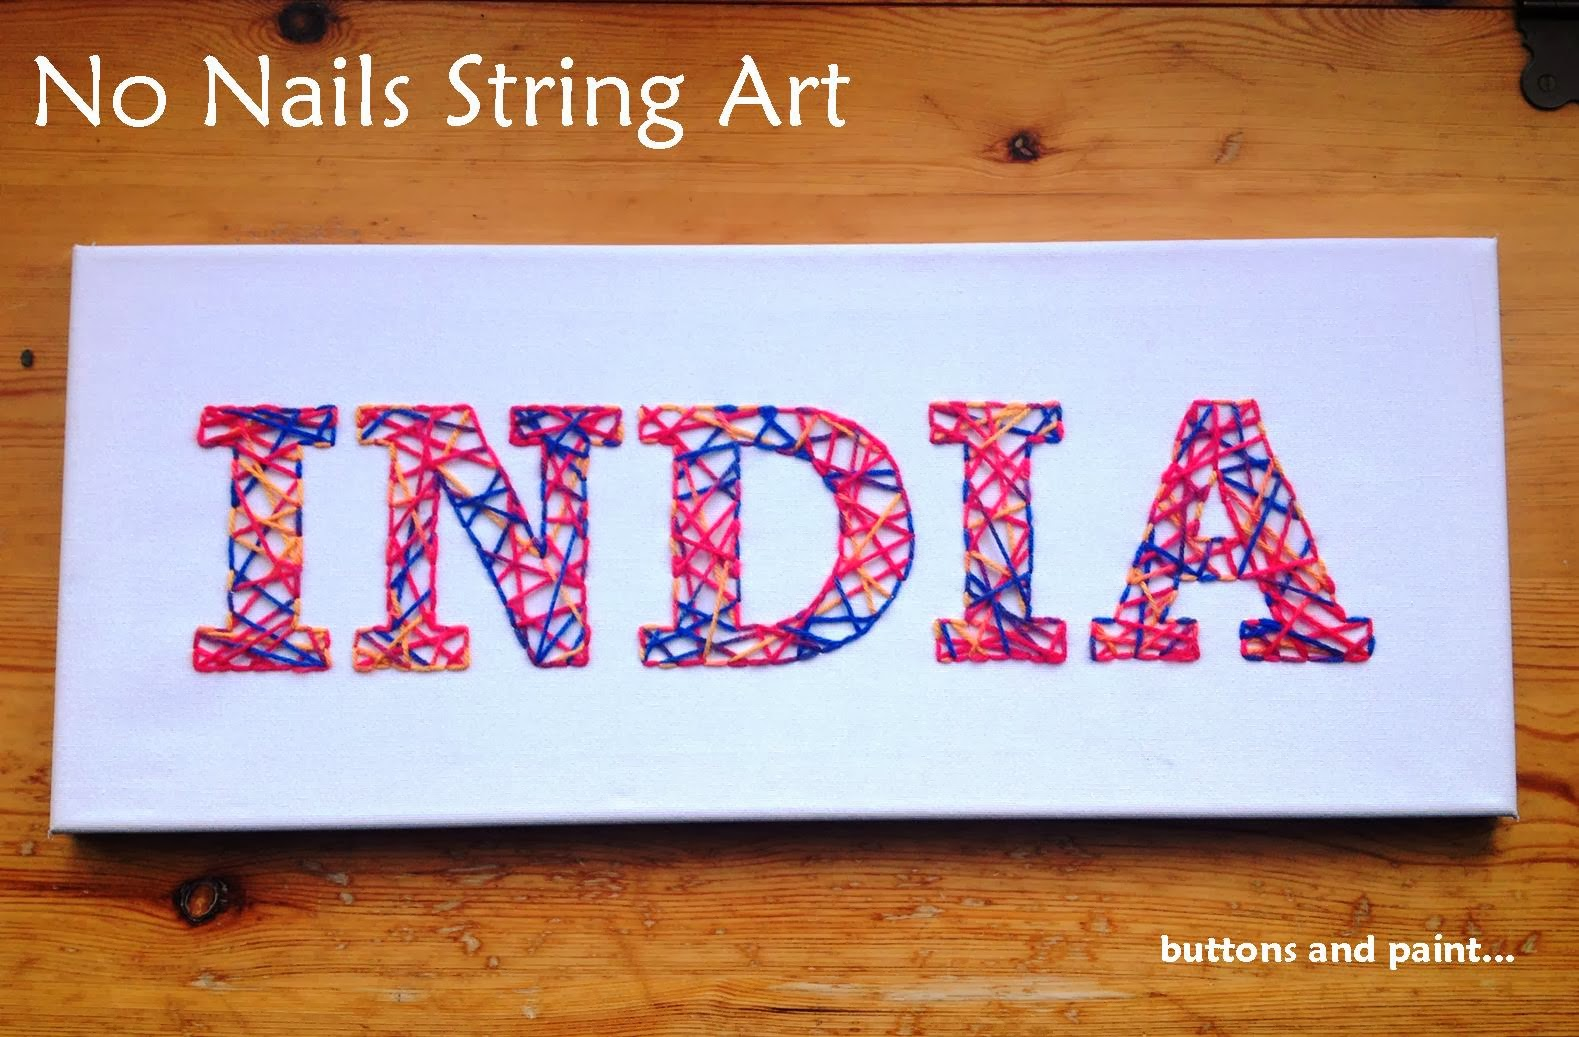 buttons and paint:  and No Nails String Art